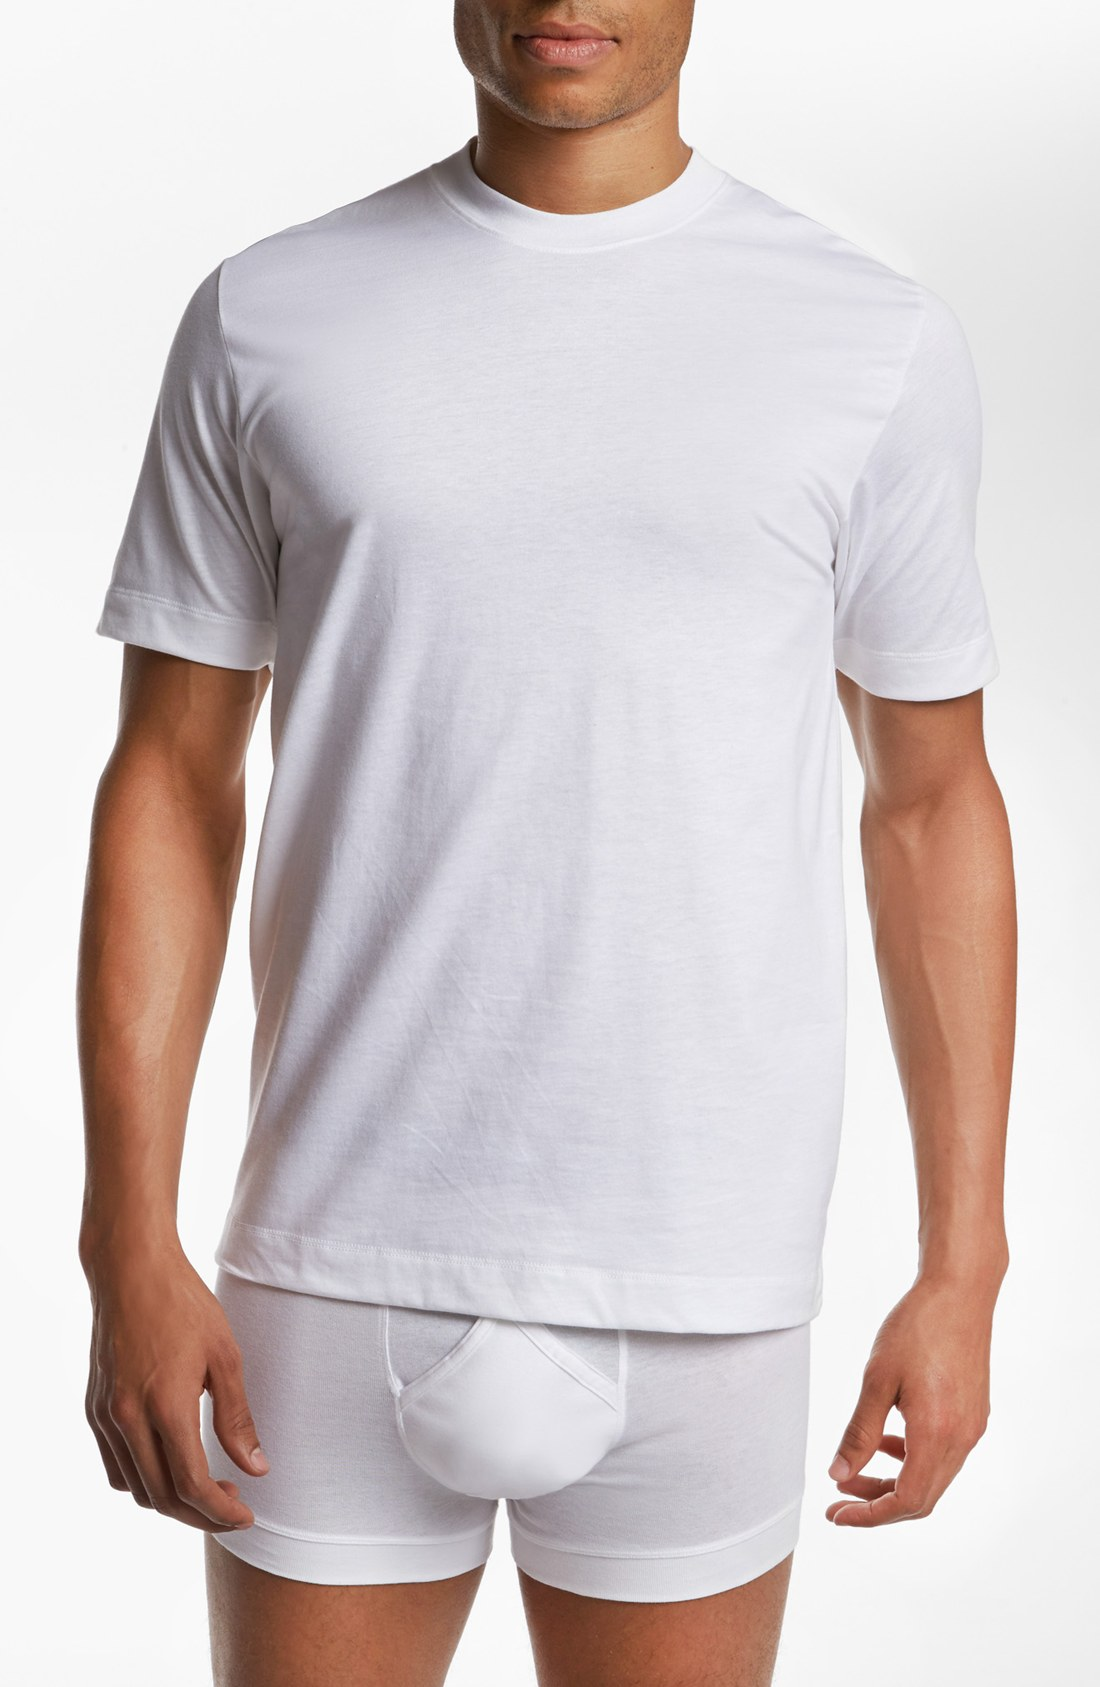 Coopers by jockey classic fit outlast t shirts 2pack in for Jockey t shirts sale